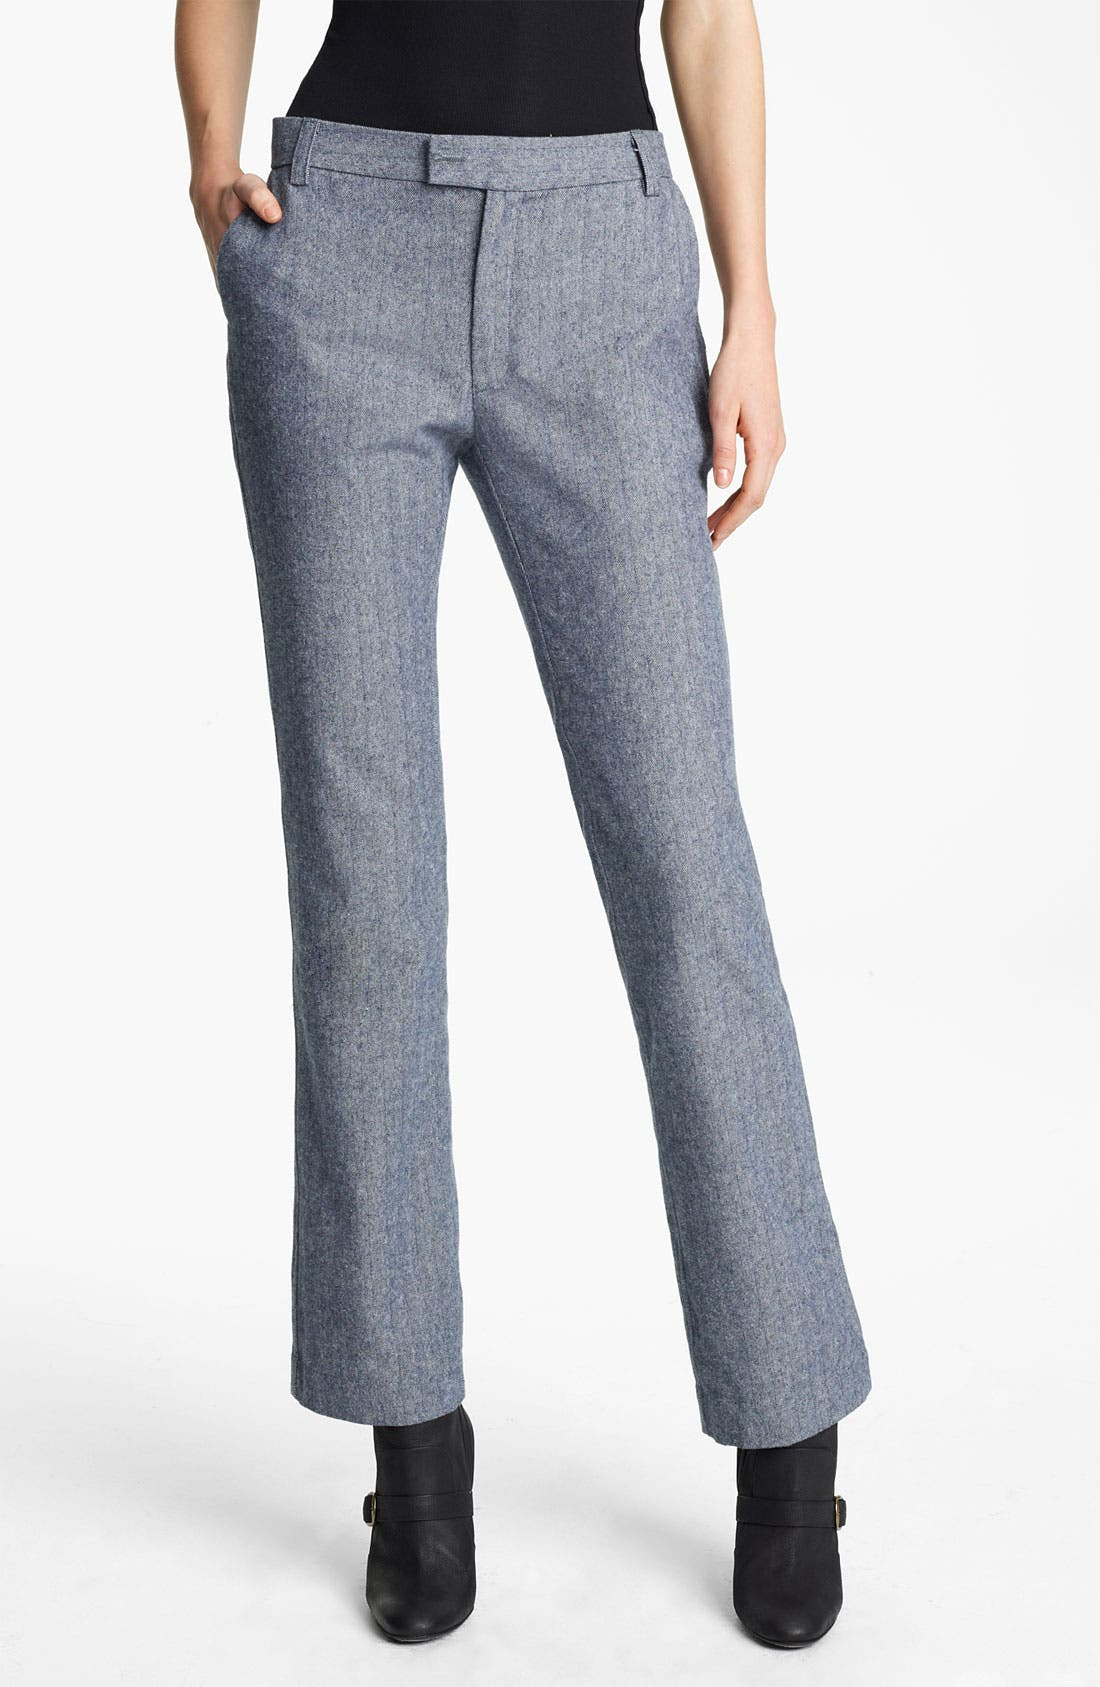 Alternate Image 1 Selected - Band of Outsiders Straight Leg Herringbone Pants